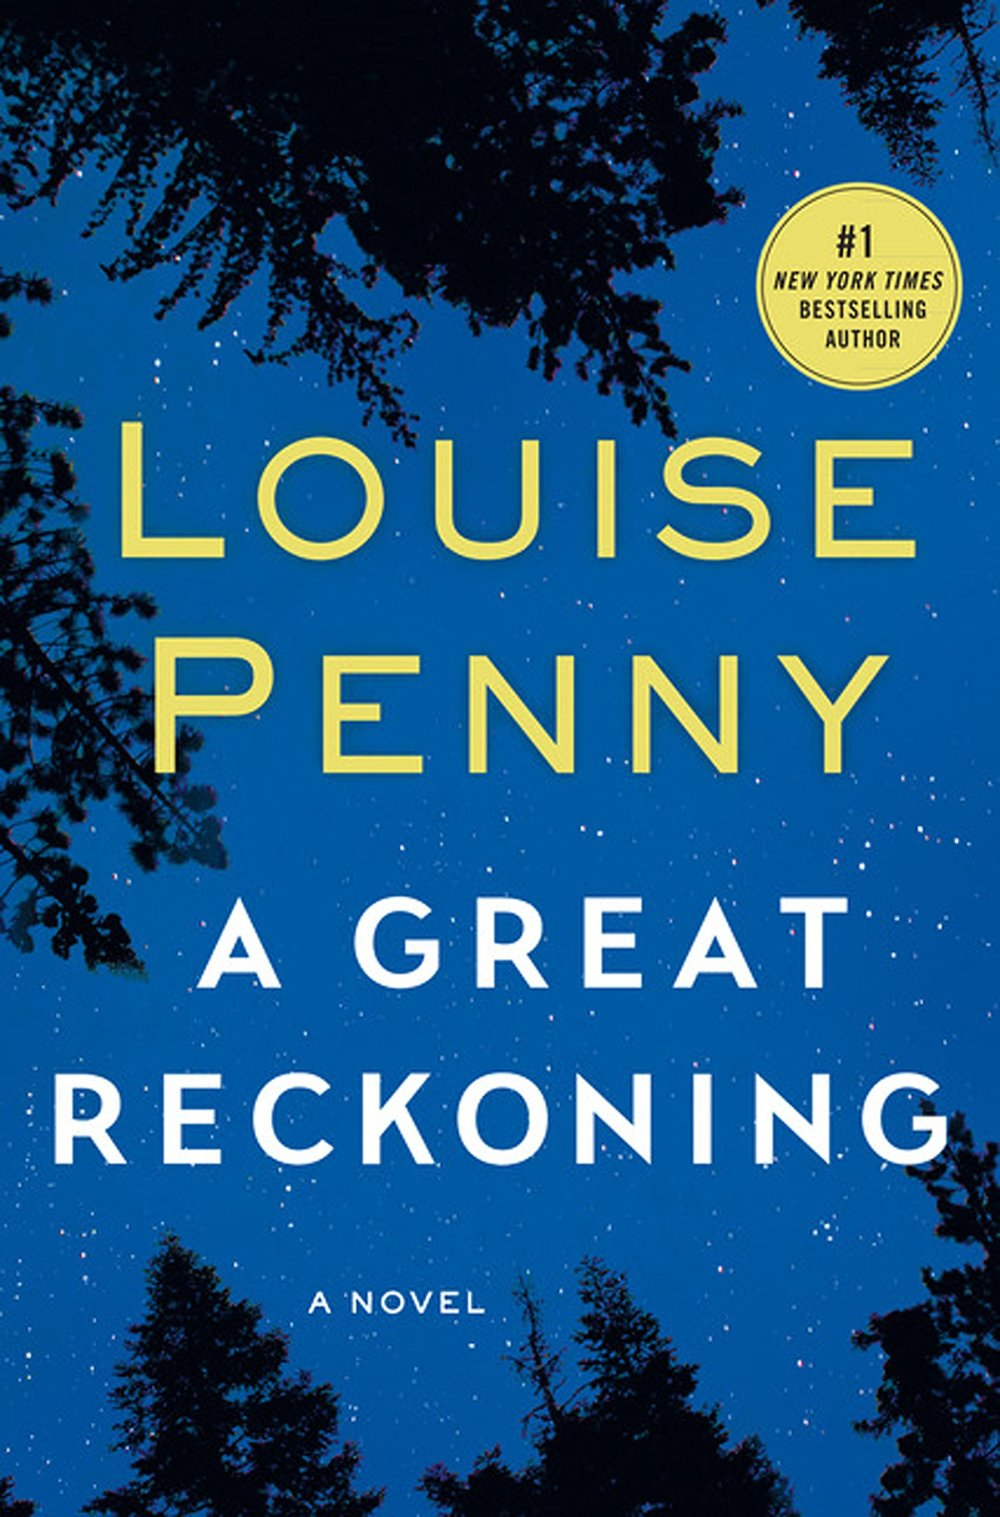 My addiction - Louise Penny's Chief Inspector Aramand Gamache series.  This is book 12.